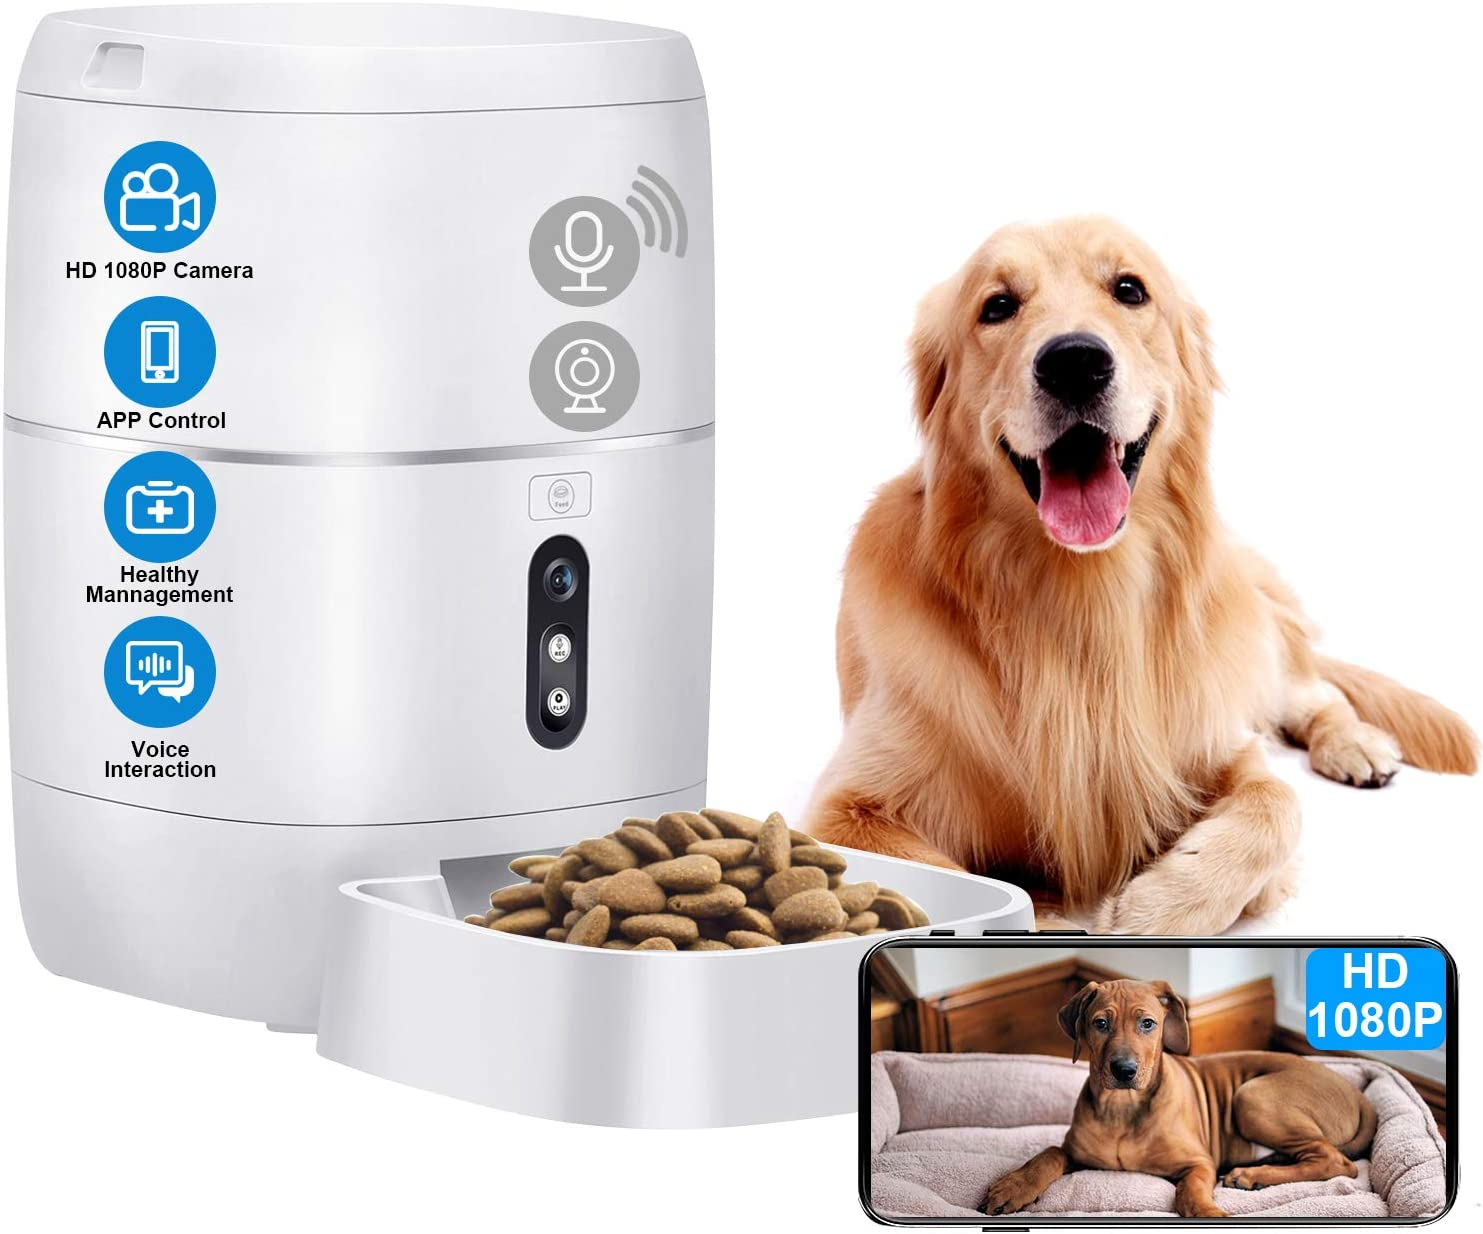 LeeKooLuu Q01 HD 1080P Camera WiFi Smart Feeder 6L Automatic Cat Feeder Automatic Dog Feeder Timer Programmable Voice and Video Recording Enabled App for iPhone and Android